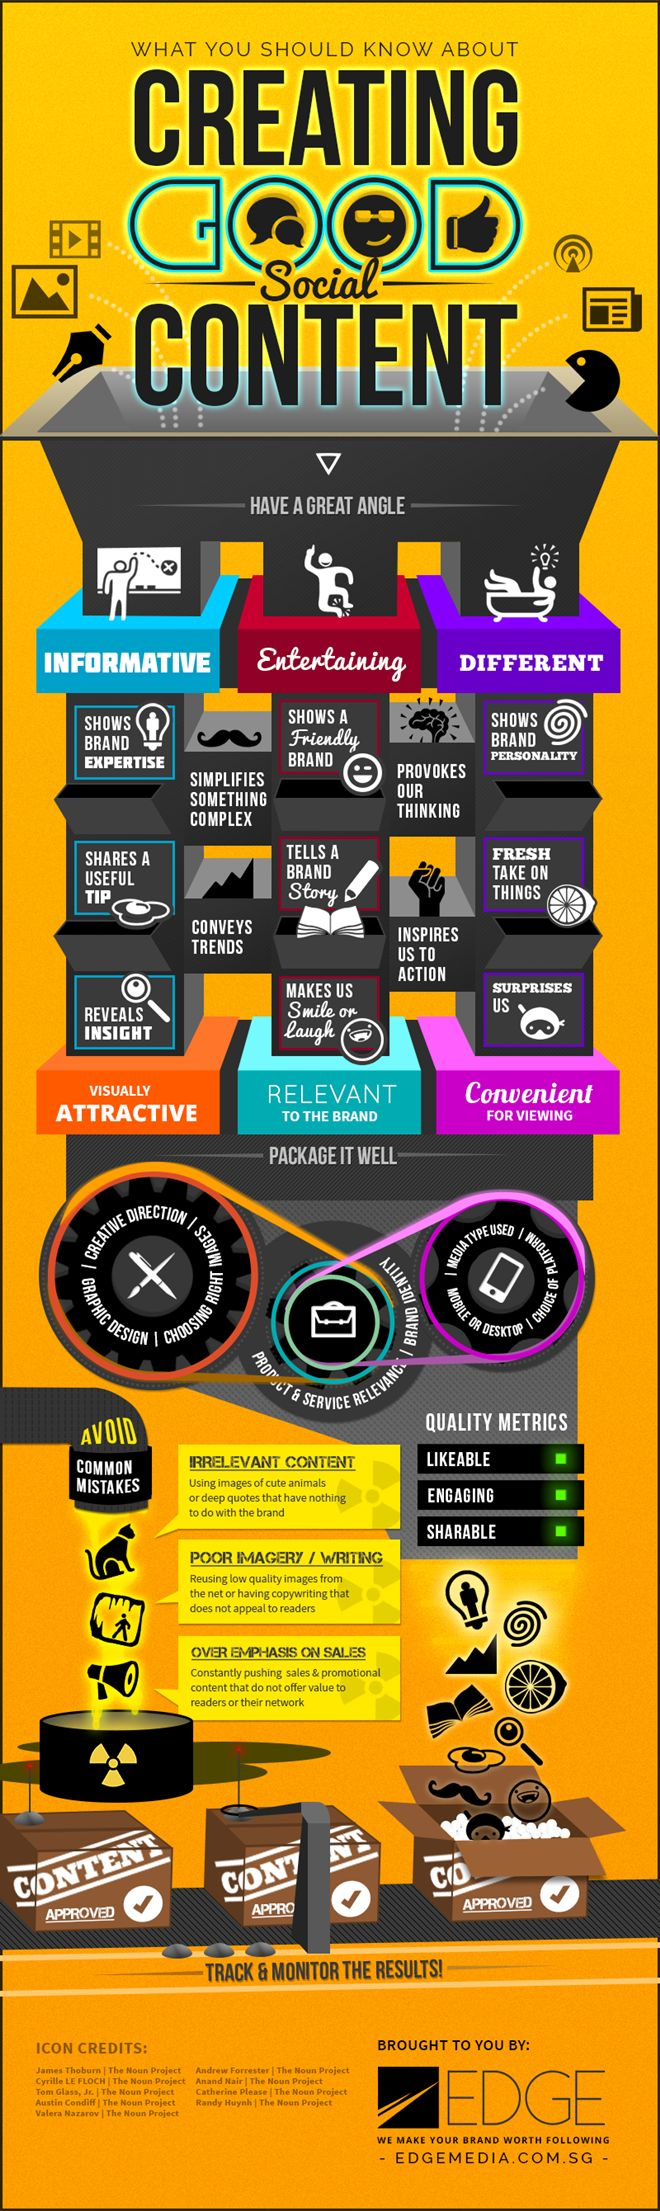 Marketing-Infographic-Simple-and-Effective-Tips-for-Creating-Great-Social-Content.-One-may-have-the Marketing Infographic : Simple and Effective Tips for Creating Great Social #Content.  One may have the ...